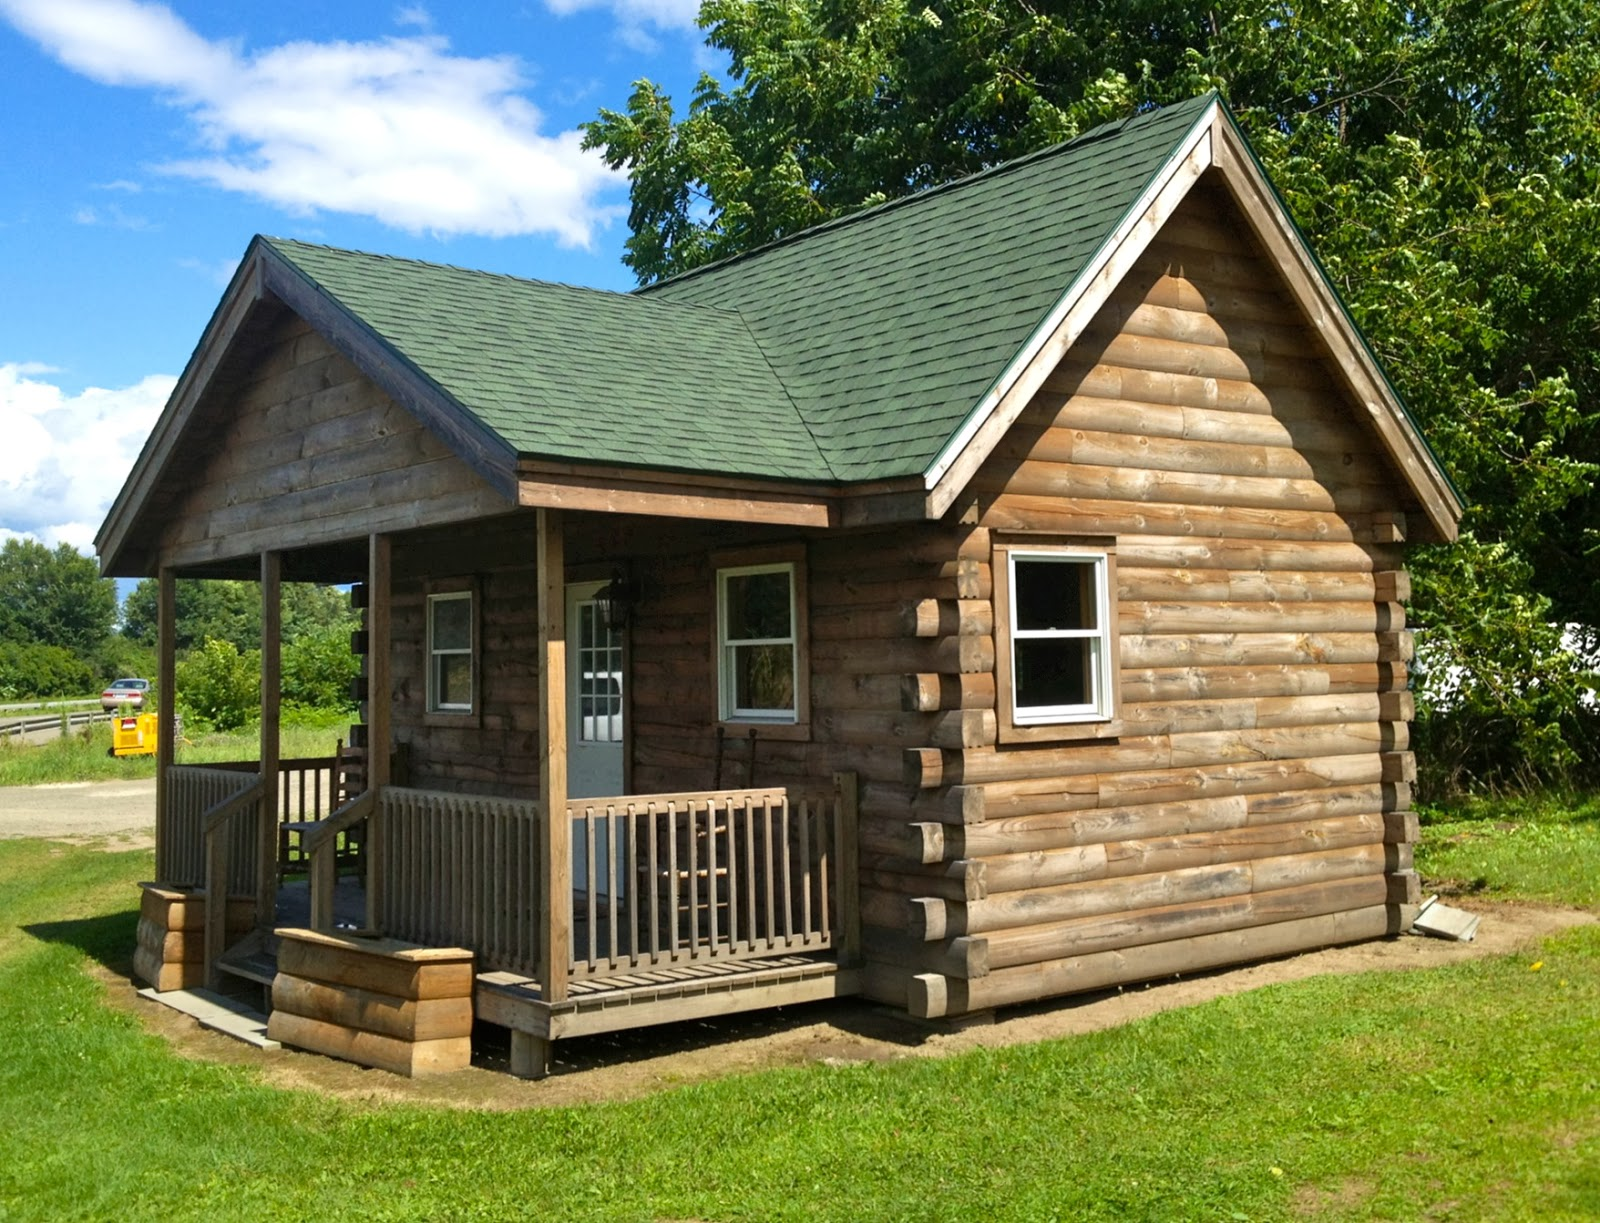 Small Scale Homes Tiny Home Near Binghamton Ny: small eco home plans